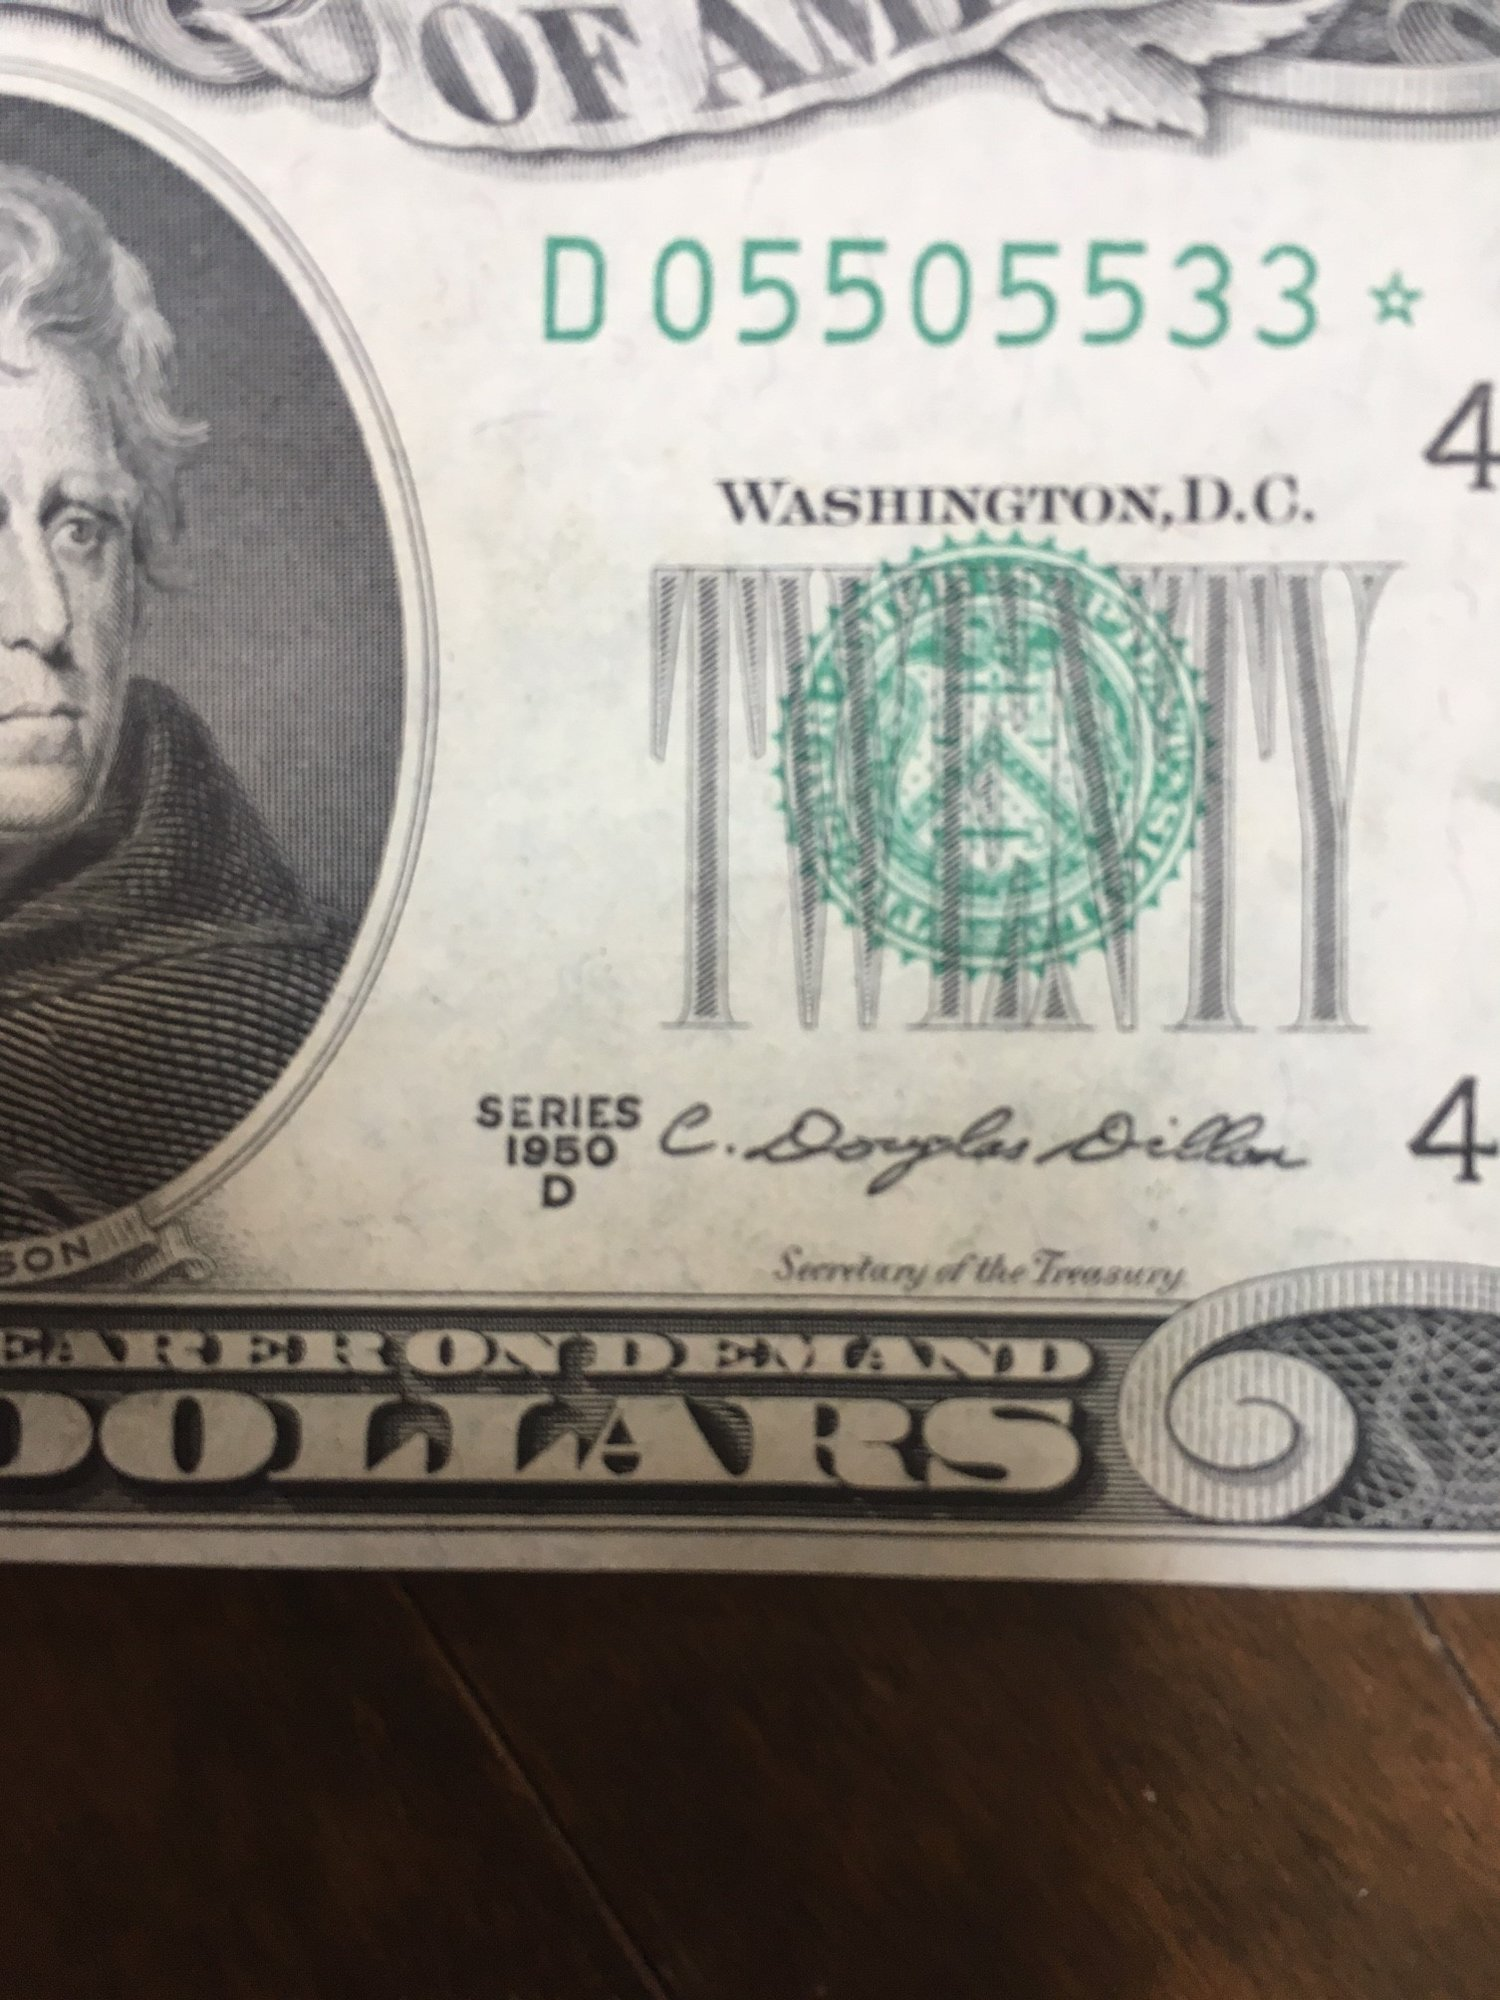 1950 20 dollar bill serial number   $20 U S  Currency Guide